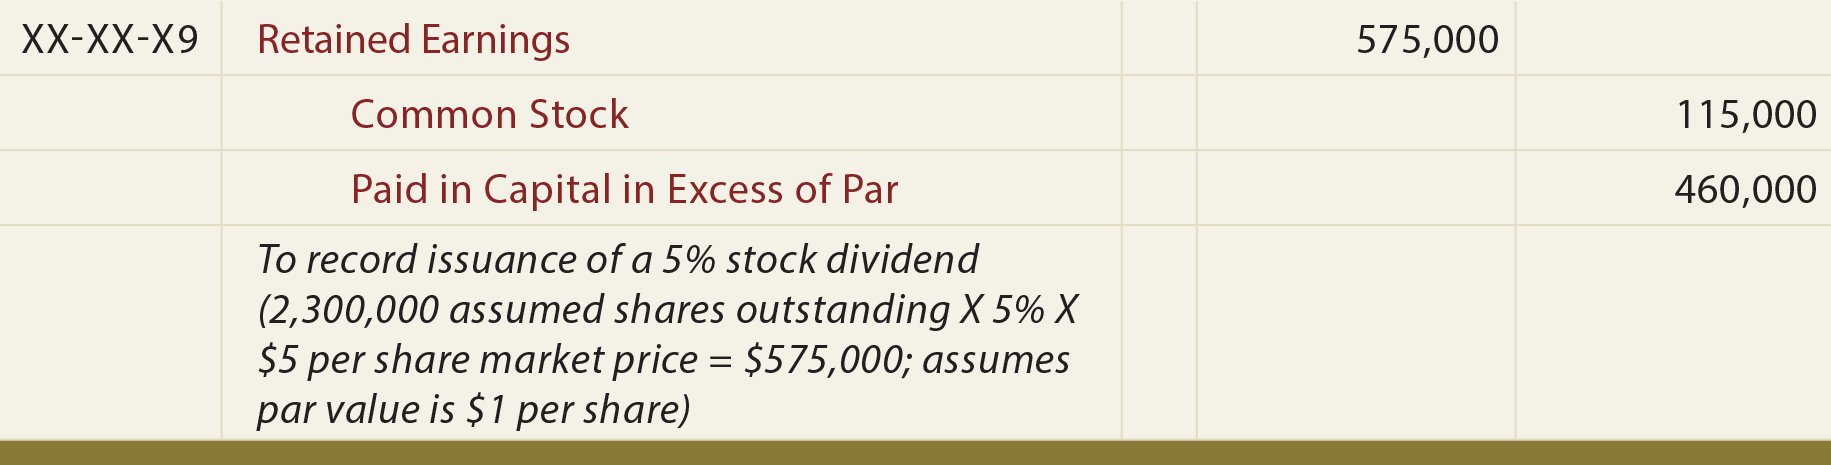 Small Stock Dividend General Journal Entry - To record issuance of small stock dividend